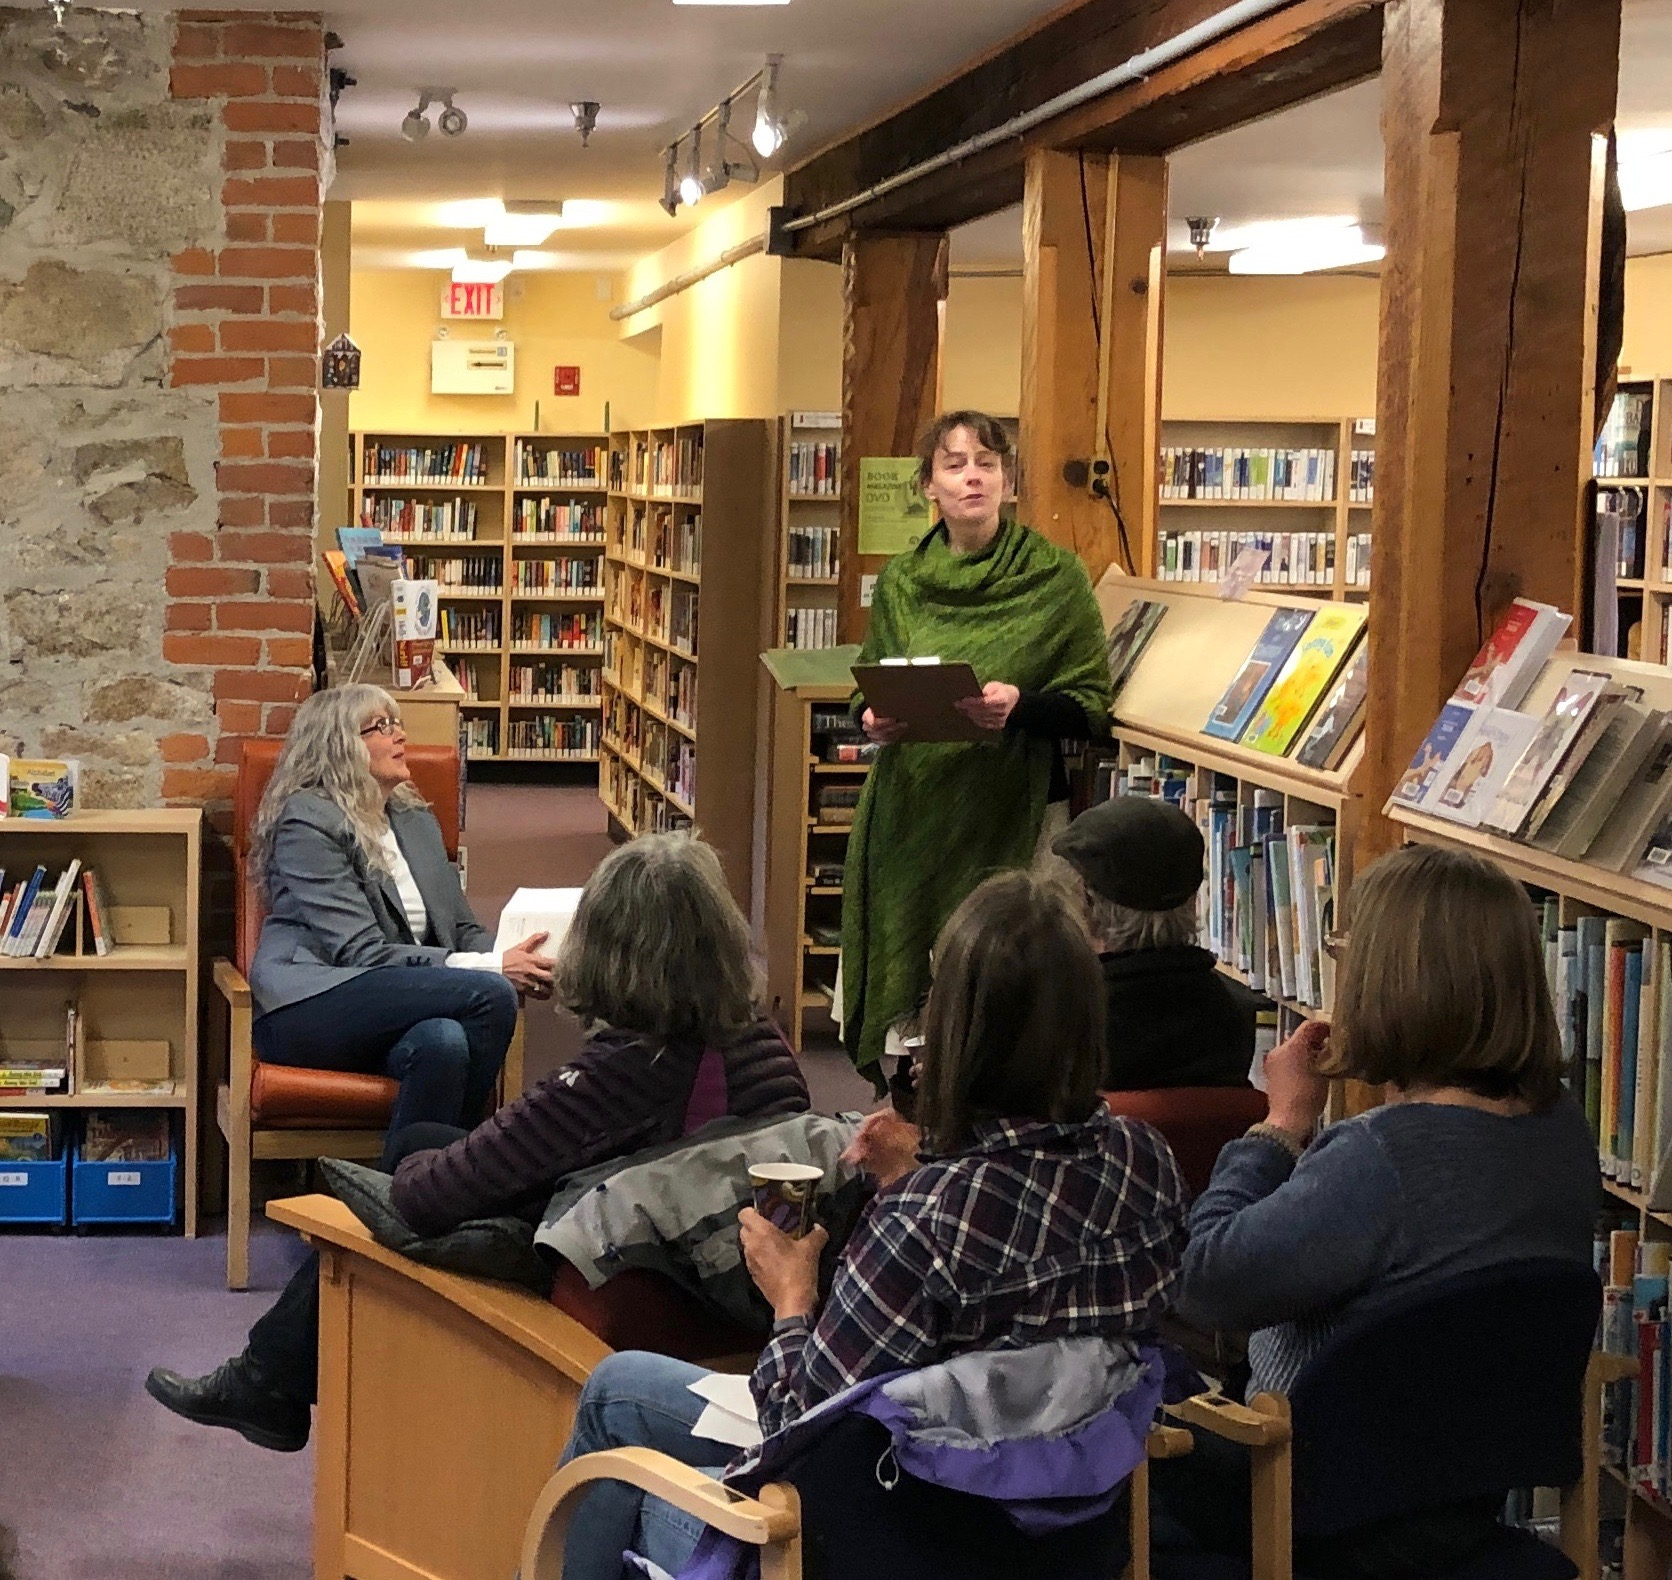 """Kaslo Librarian, Angela Bennett, spent a few moments introducing me and sharing her impressions of my memoir. The library, in its current incarnation, is housed in the town space that operated as the jail from 1898-1913 and then became a storage space for public works. It had a dirt floor when renovations began in 1979! The Local History room, behind me with the partial red brick wall, was renovated in 2008 as part of a BC150 celebration project to open the 1898 """"dark cell"""" which was used for solitary confinement of prisoners. If you're ever in Kaslo, which is a fascinating, gorgeous town north of Nelson in the West Kootenays, you have to come check it out!"""